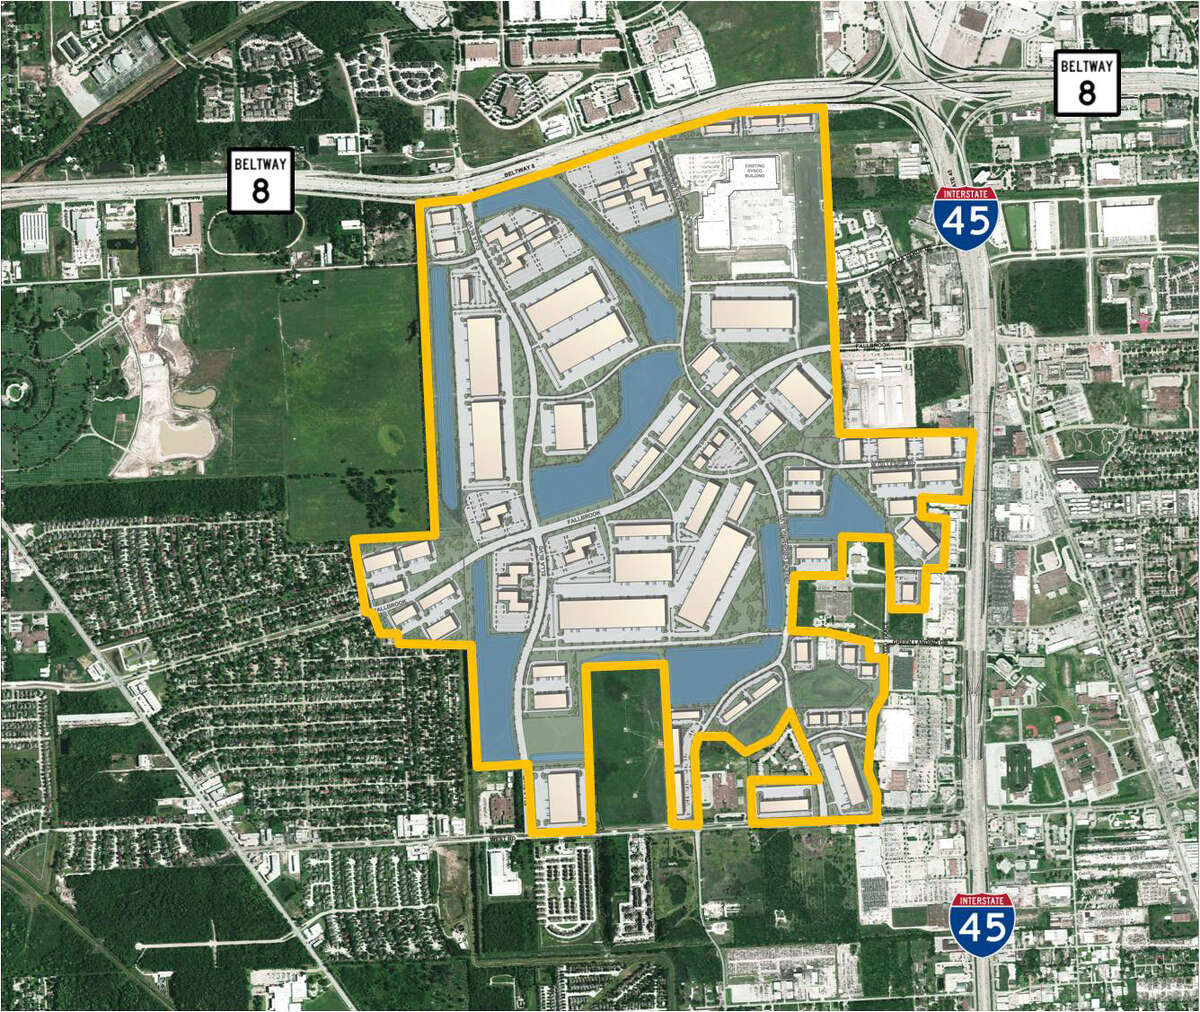 Aerial photo of the master plan of the Pinto Business Park near the southwest corner of Beltway 8 and Interstate 45 North